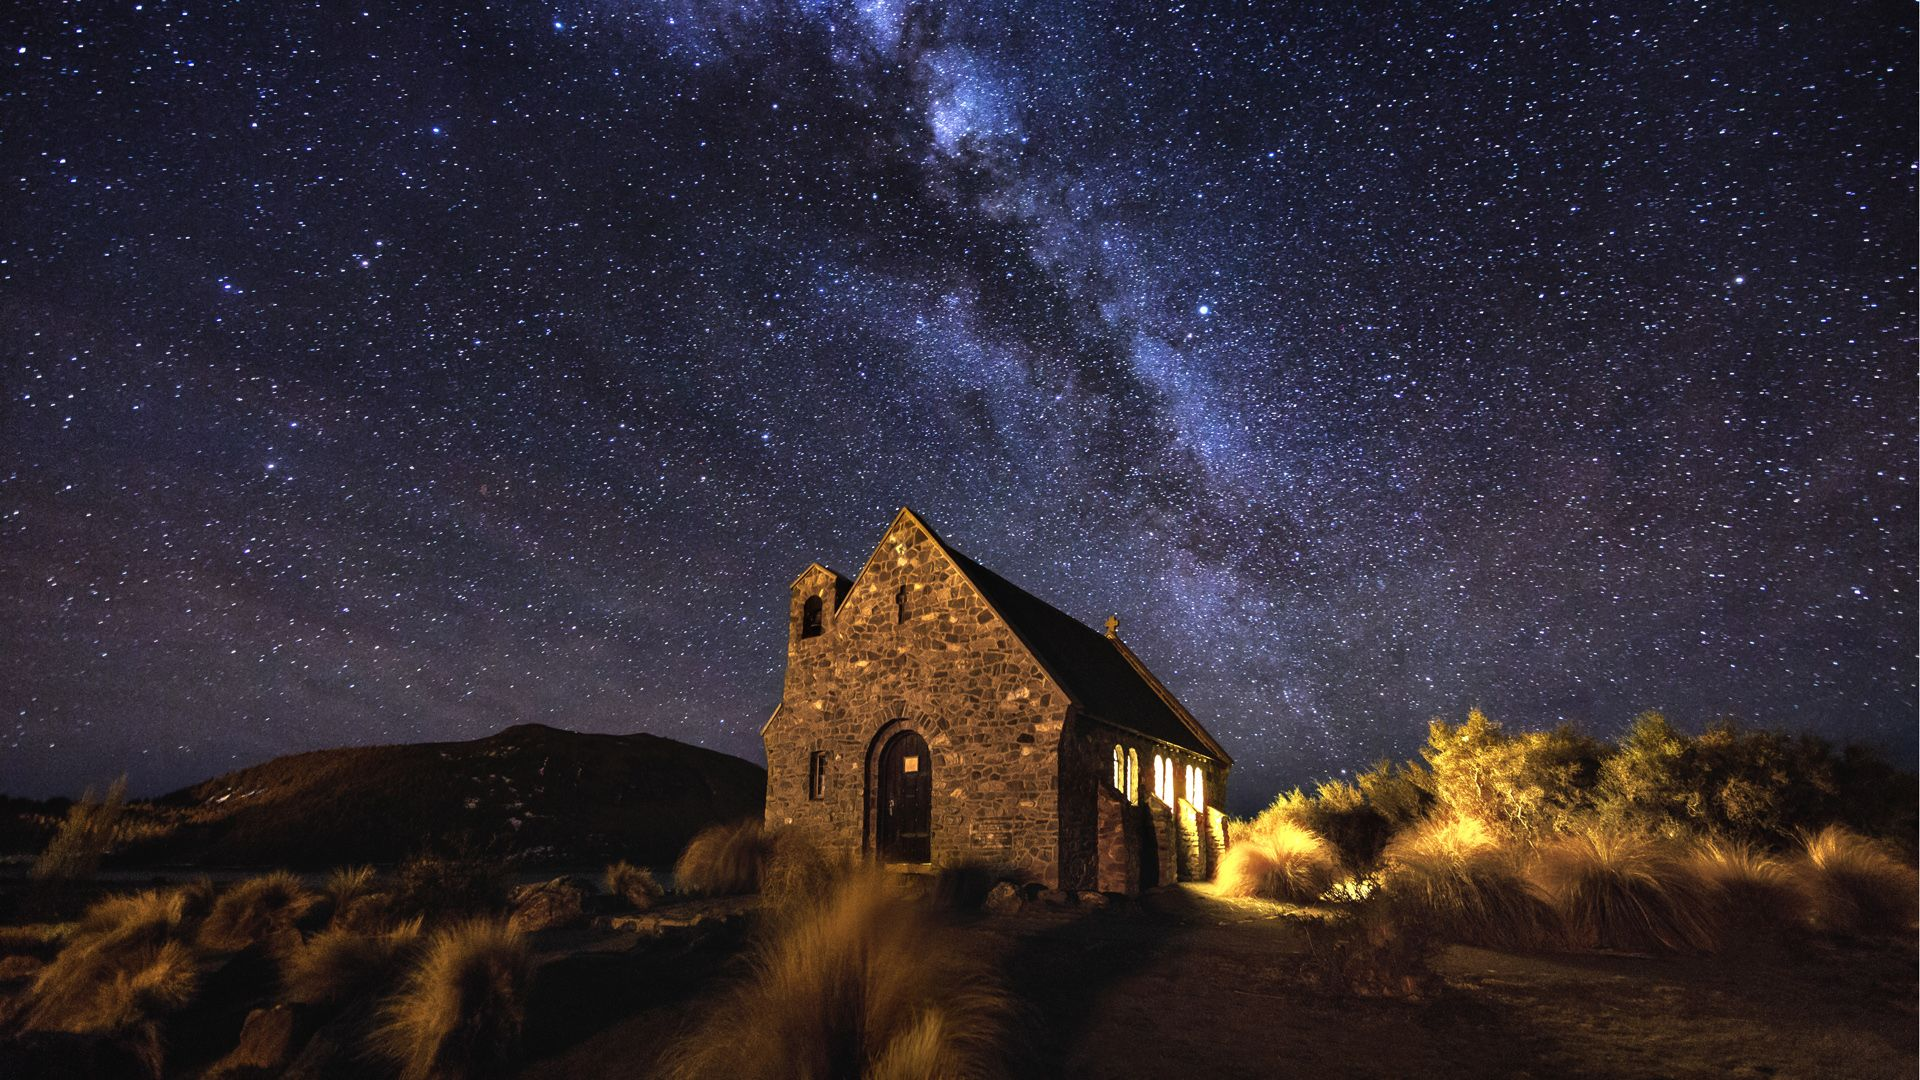 The Church of the Good Shepherd | Lake Tekapo, New Zealand